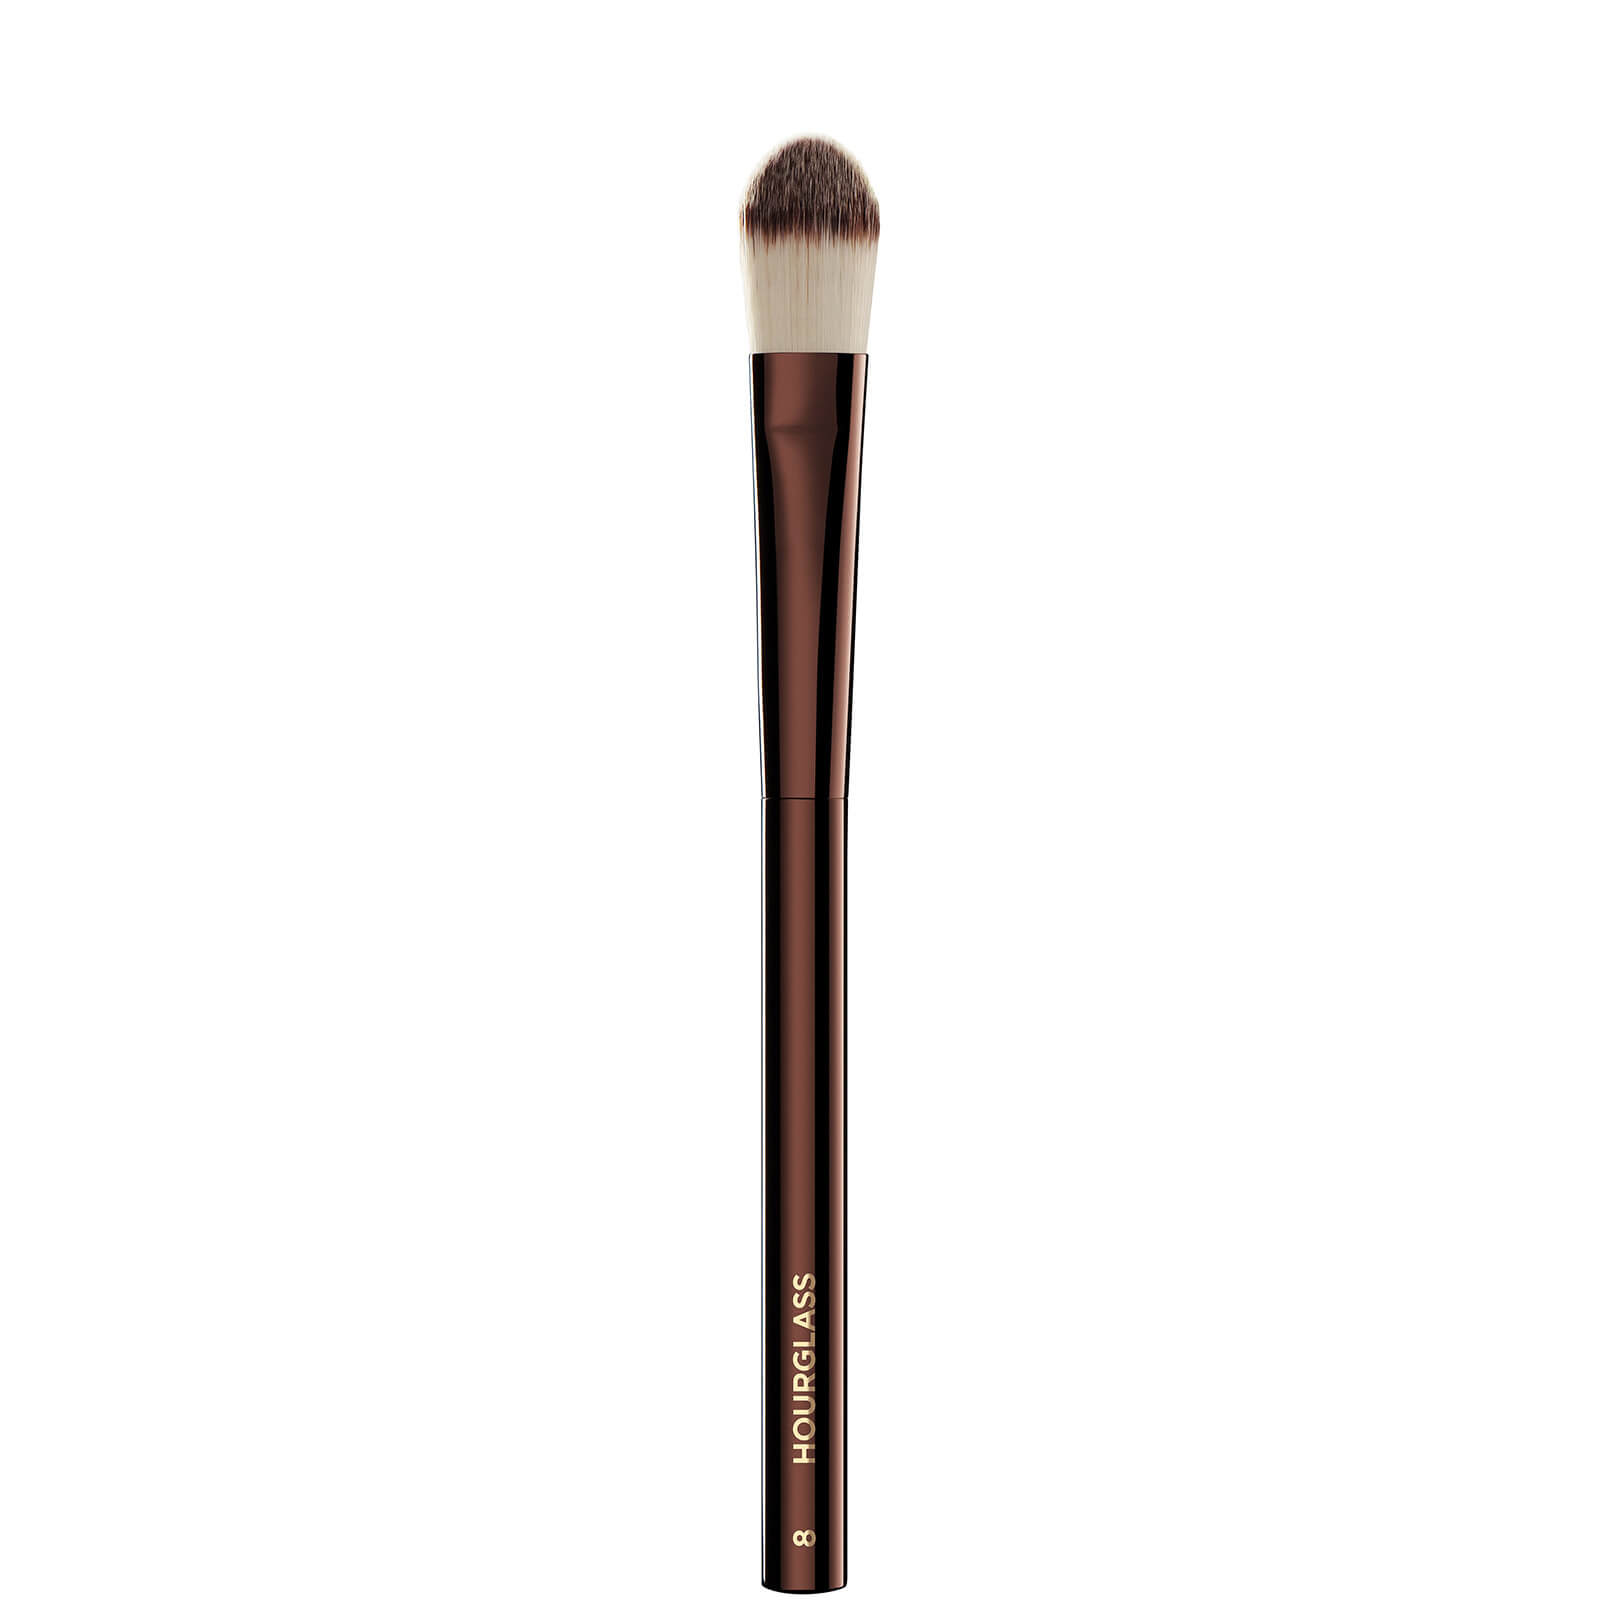 Hourglass No. 8 Large Concealer Brush